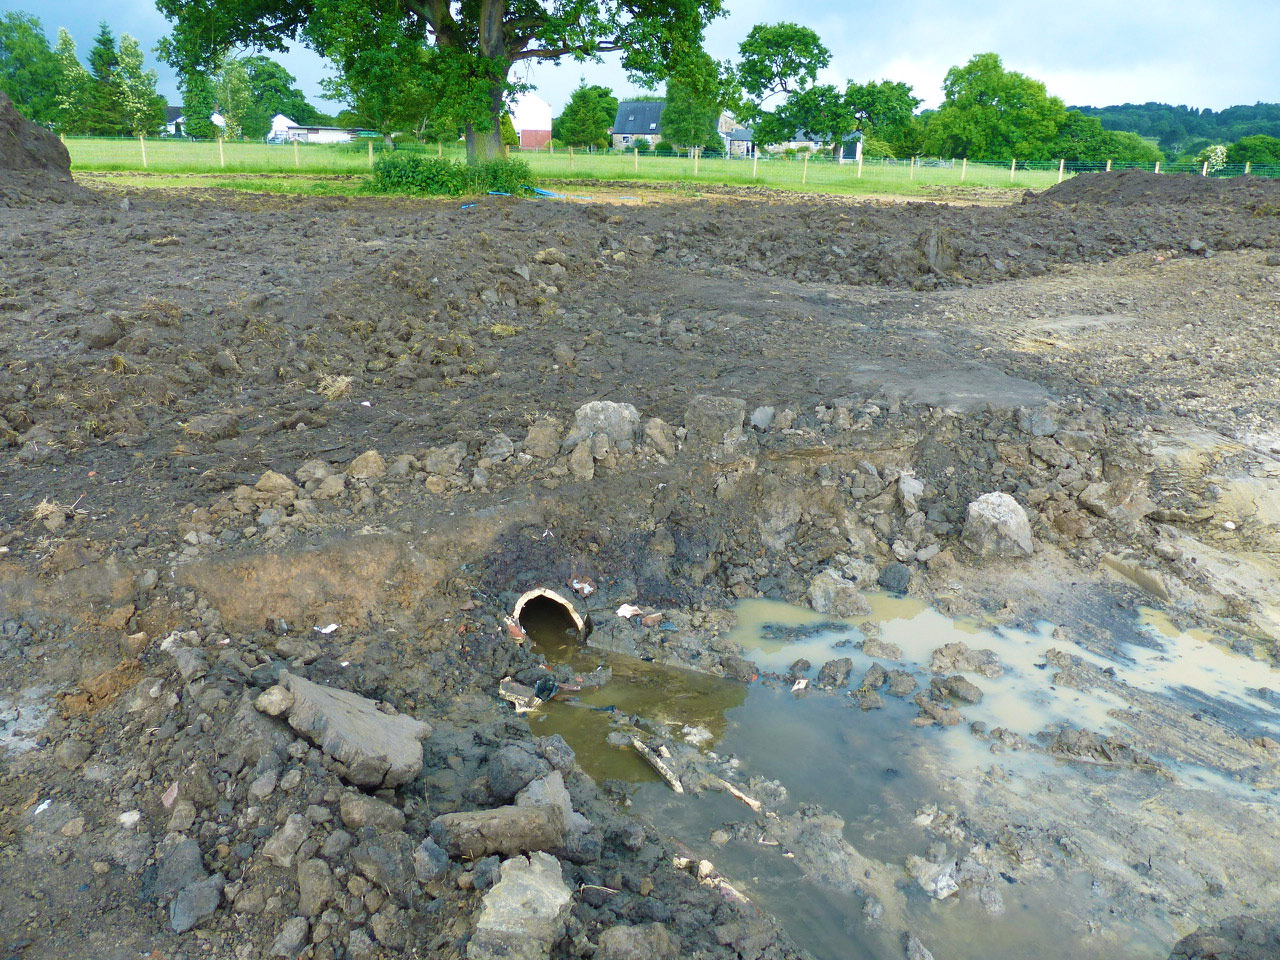 The already wet site was made all the more challenging when an unknown major land drainage system was uncovered and broken - leading to significant site flooding.